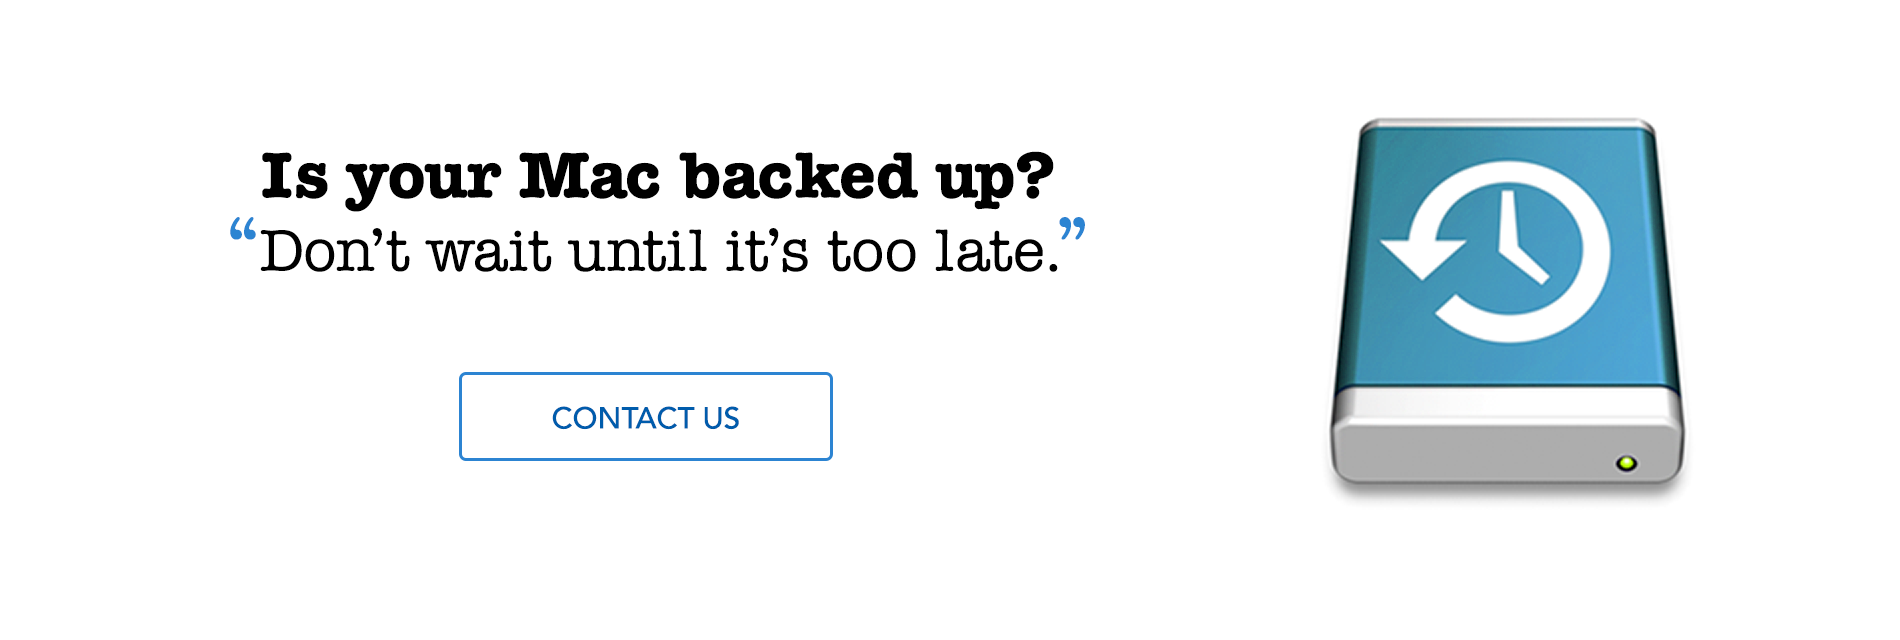 Is your Mac backed up? Don't wait until it's too late.